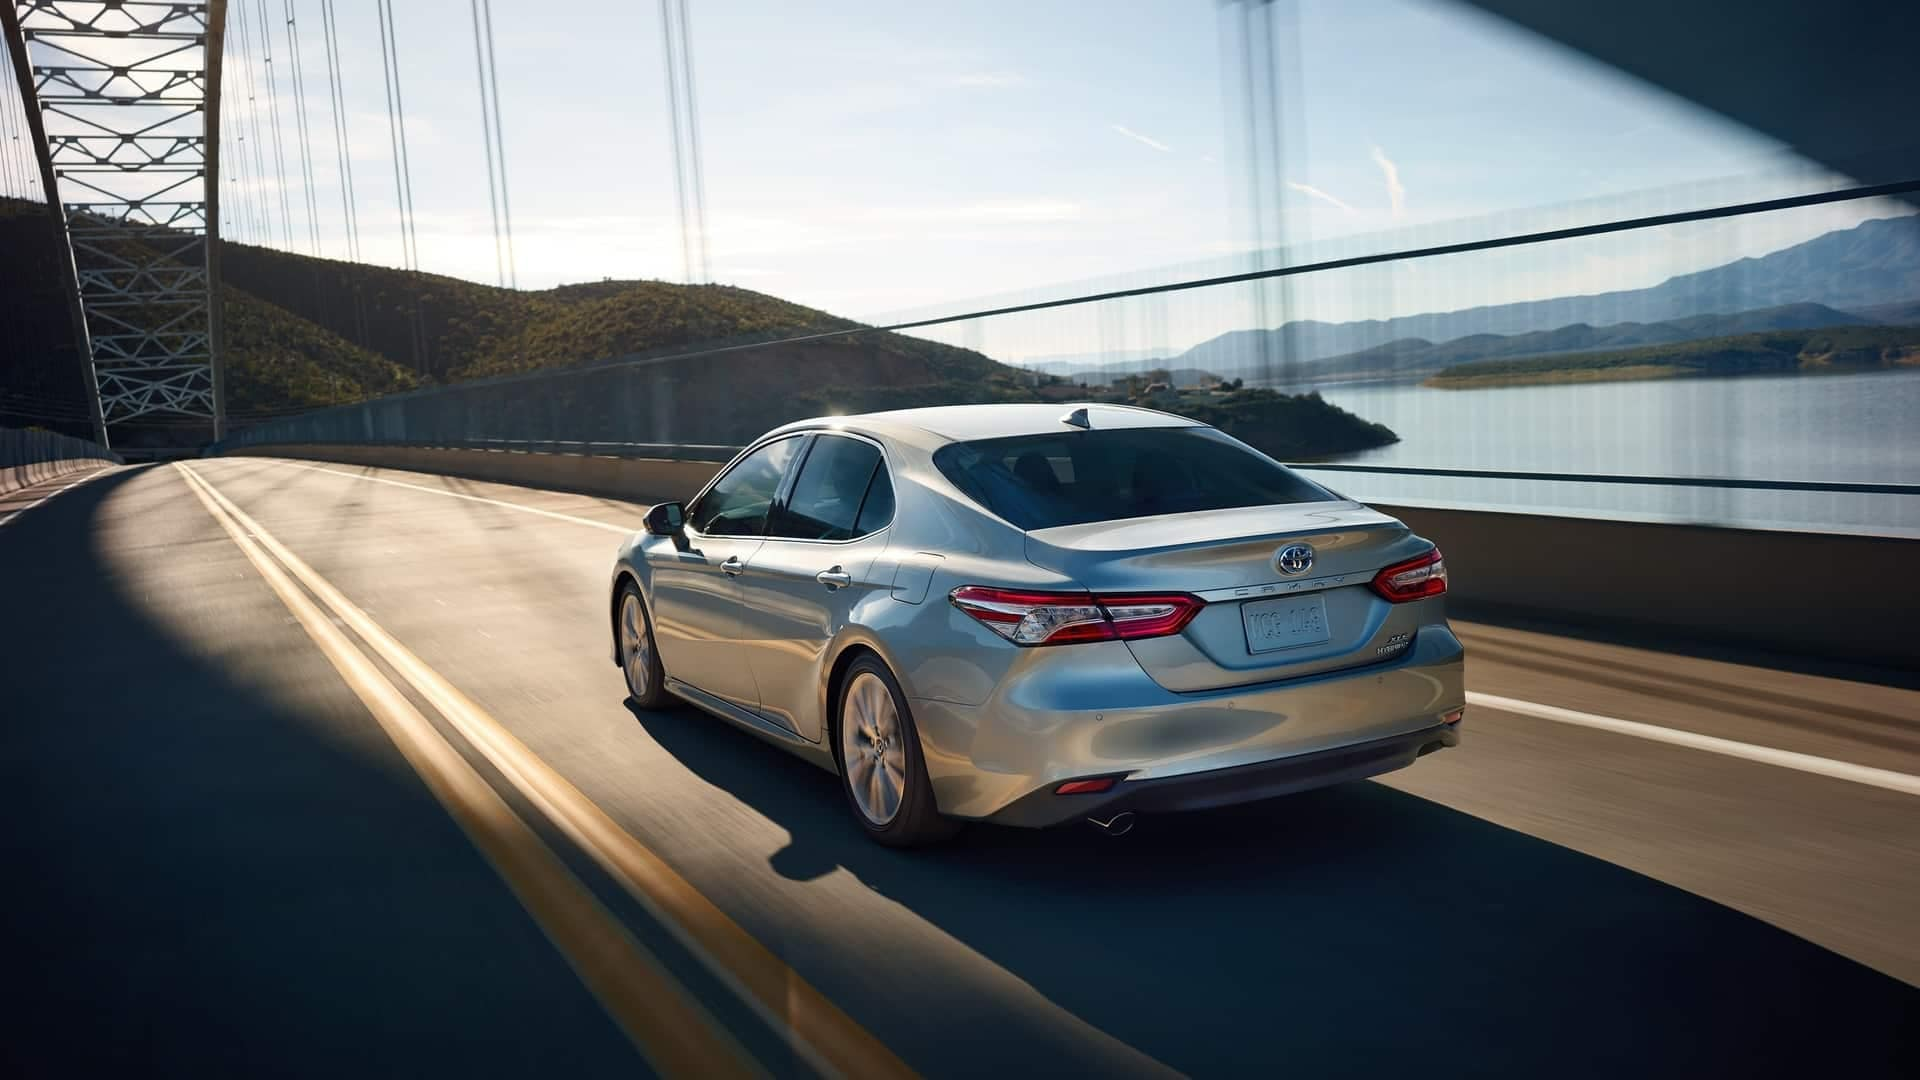 Buy, Lease, or Finance the 2020 Toyota Camry near Bossier City LA